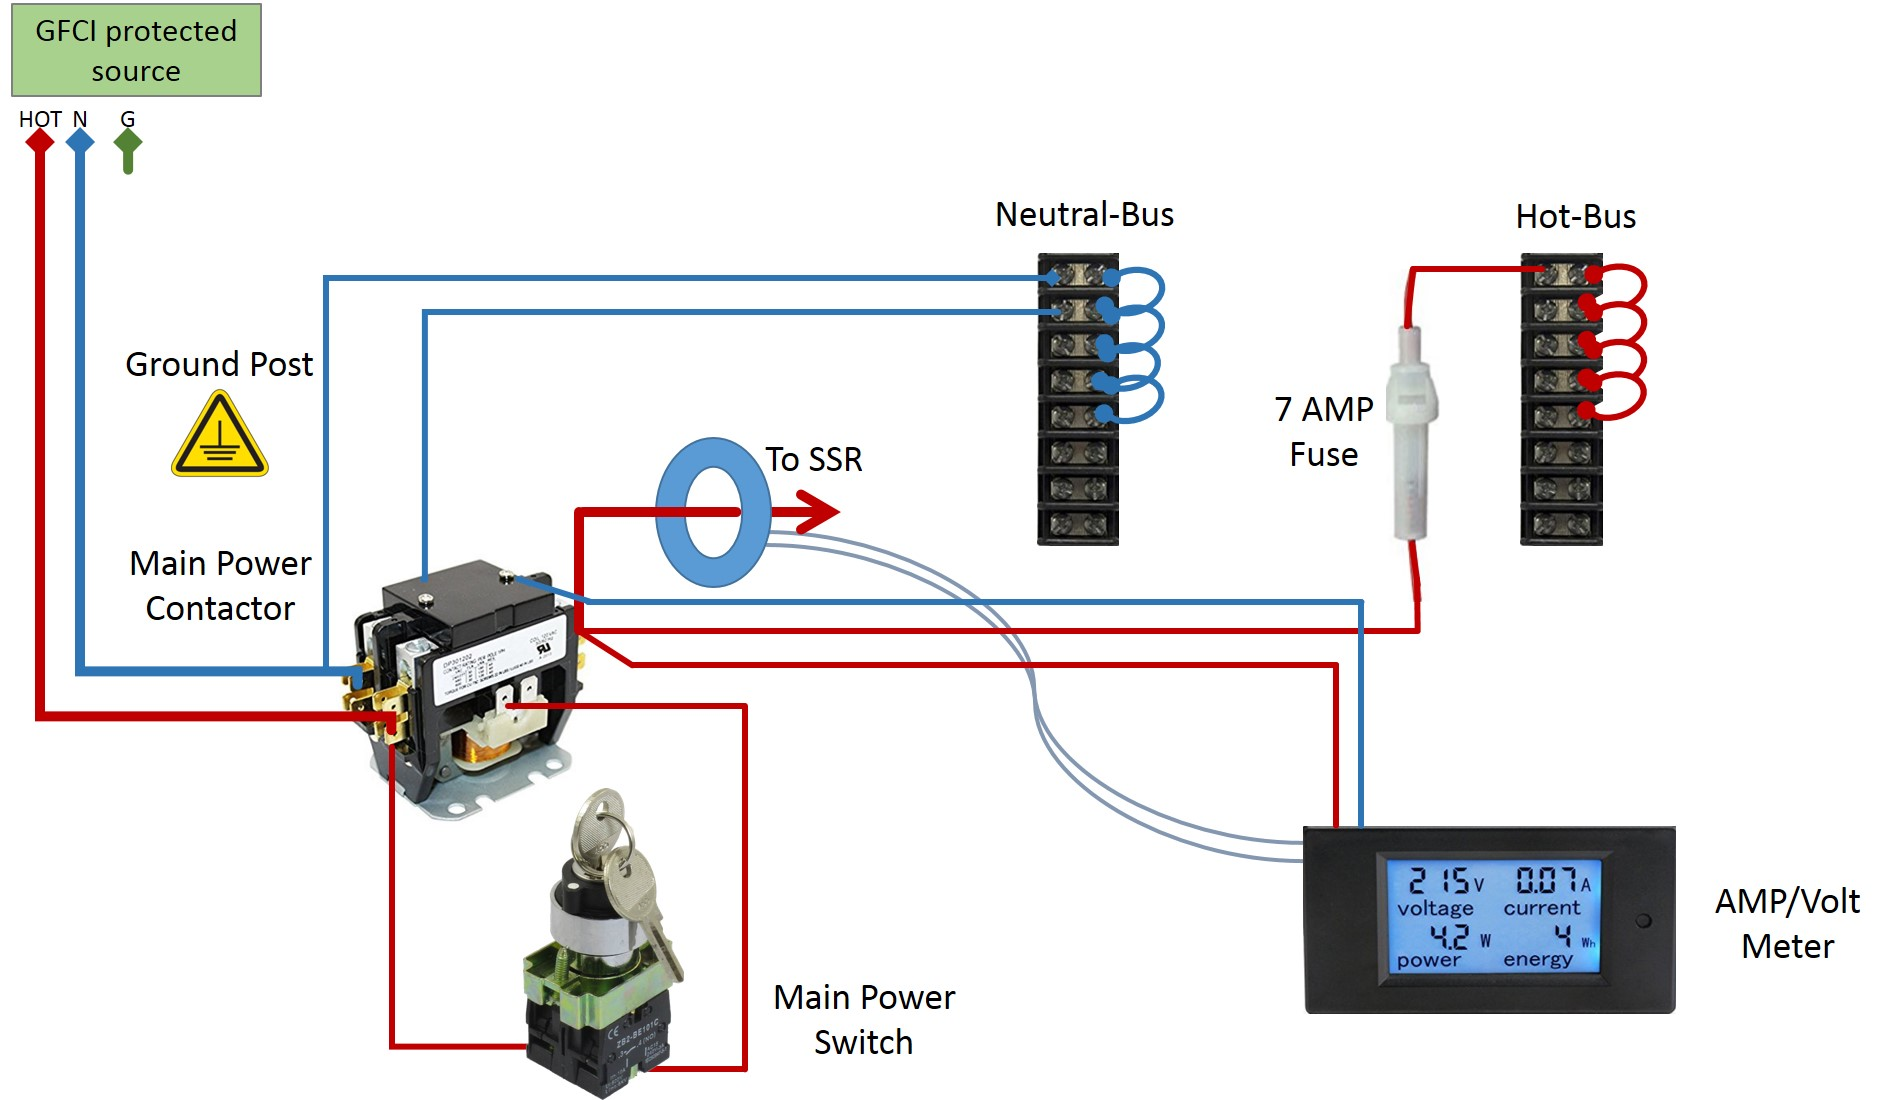 Wiring For Switch And Contactor Coil - Wiring Diagram Schemas